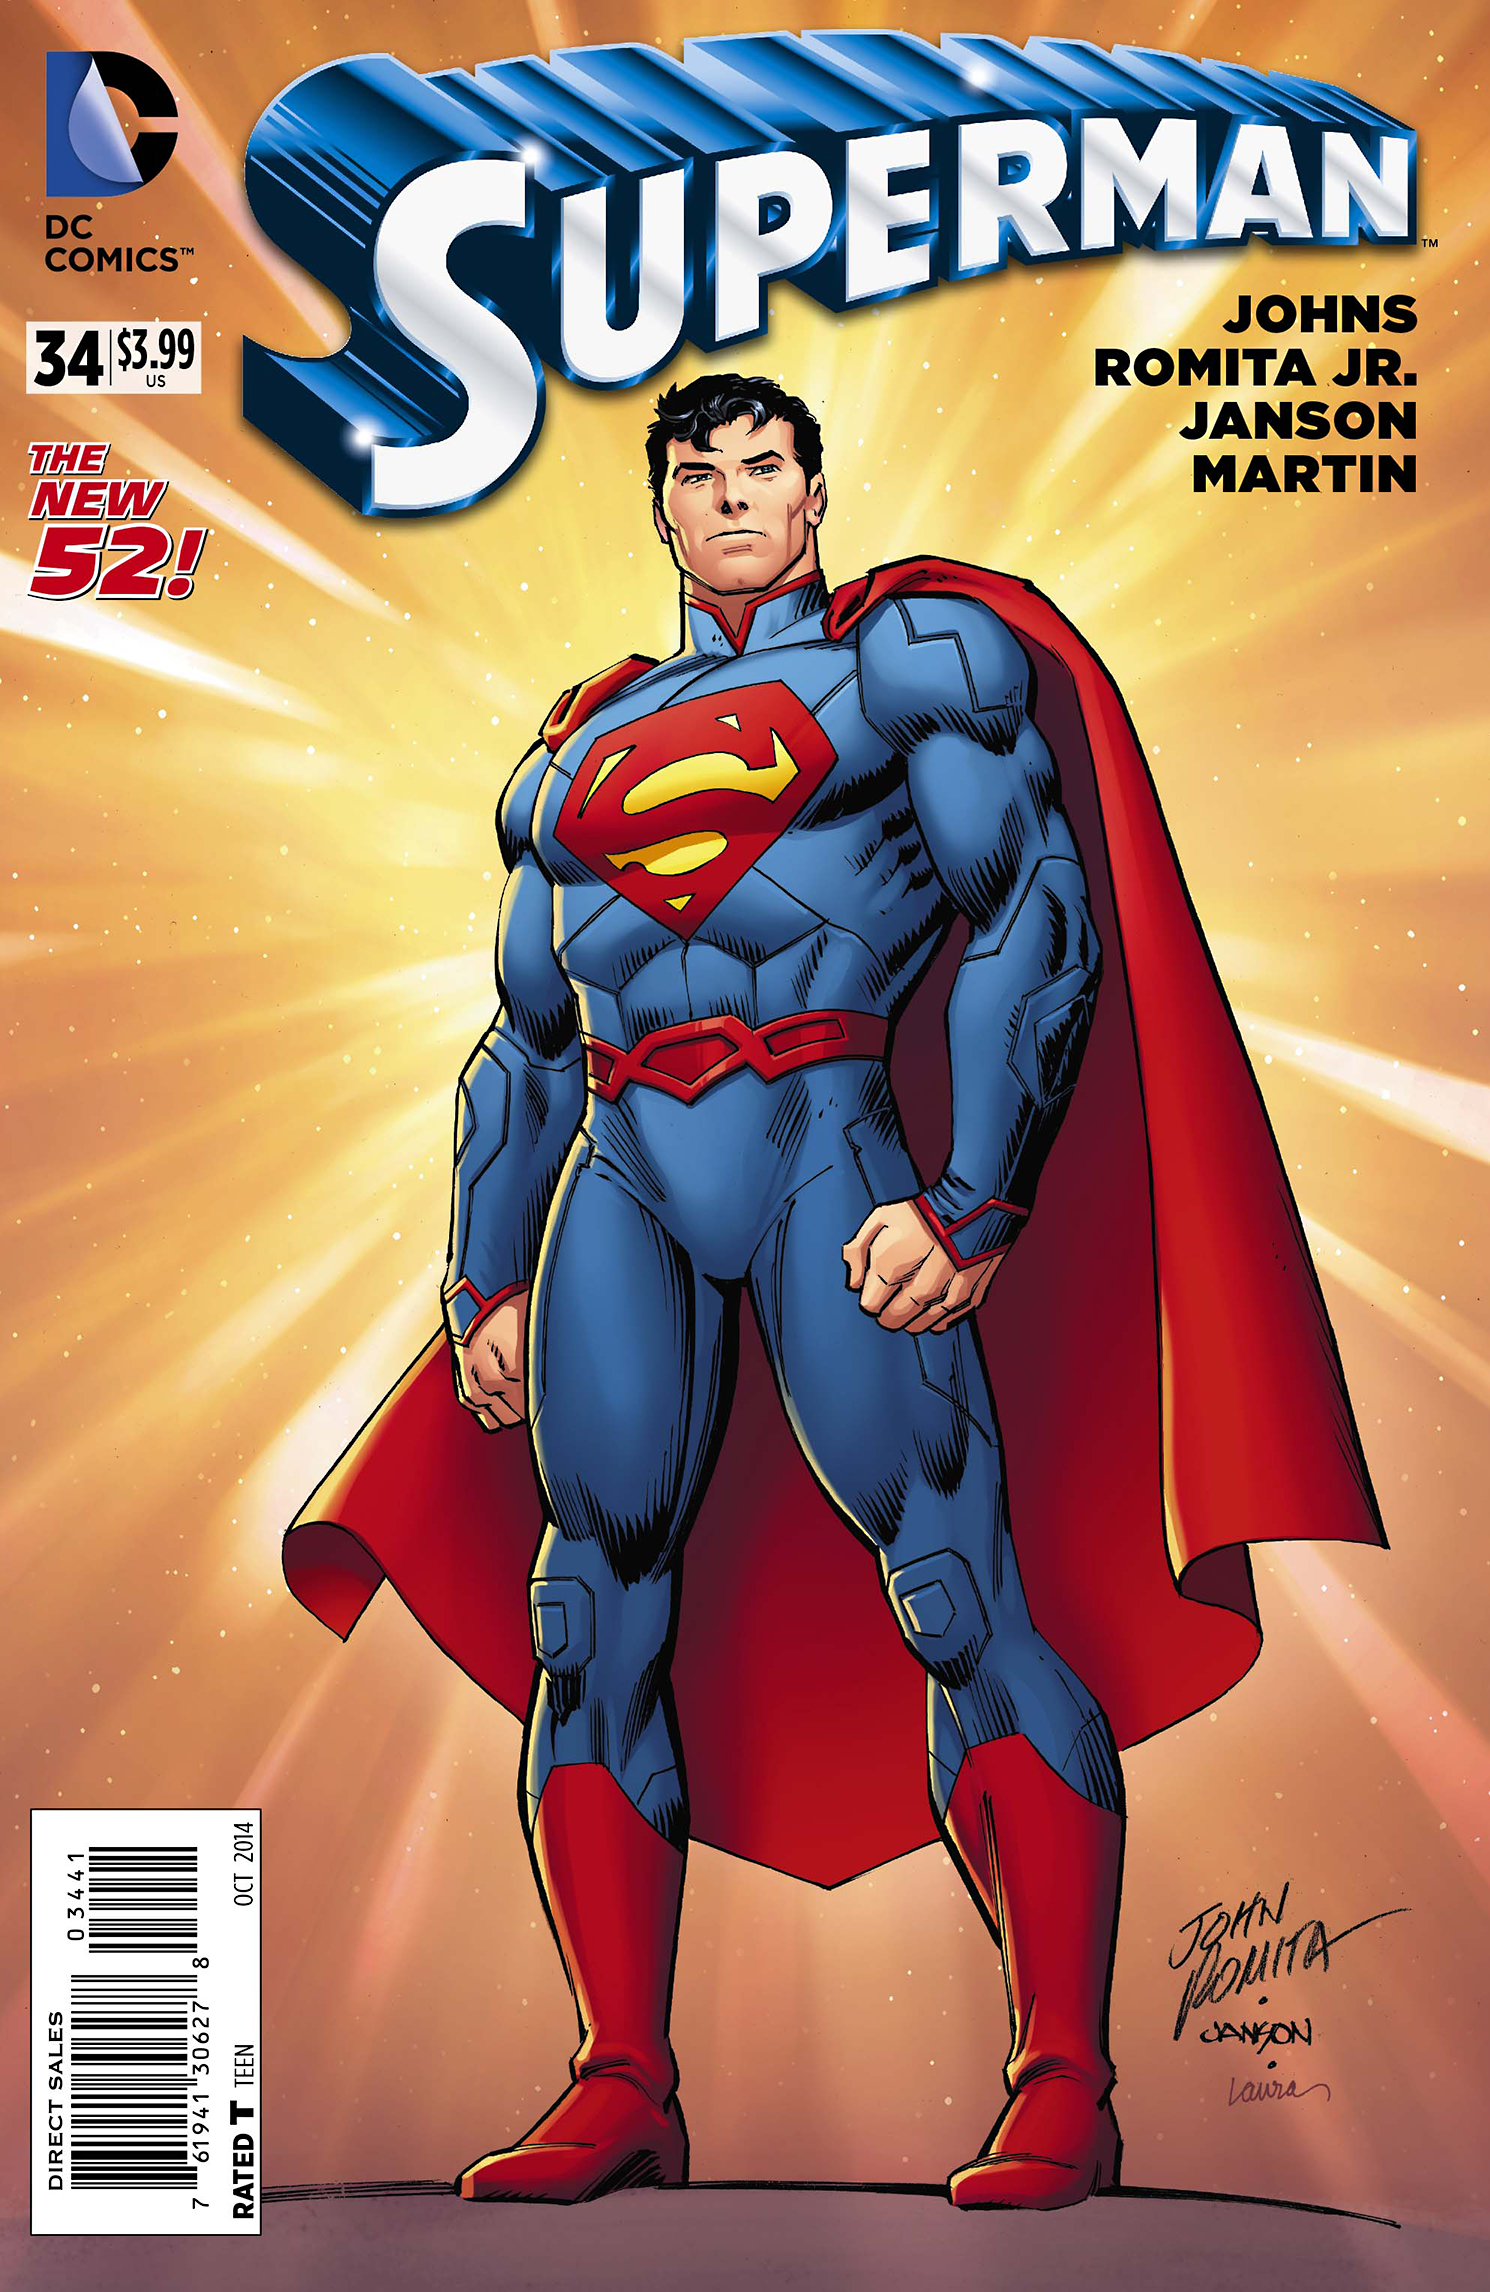 SUPERMAN #34 100 COPY INCV VAR